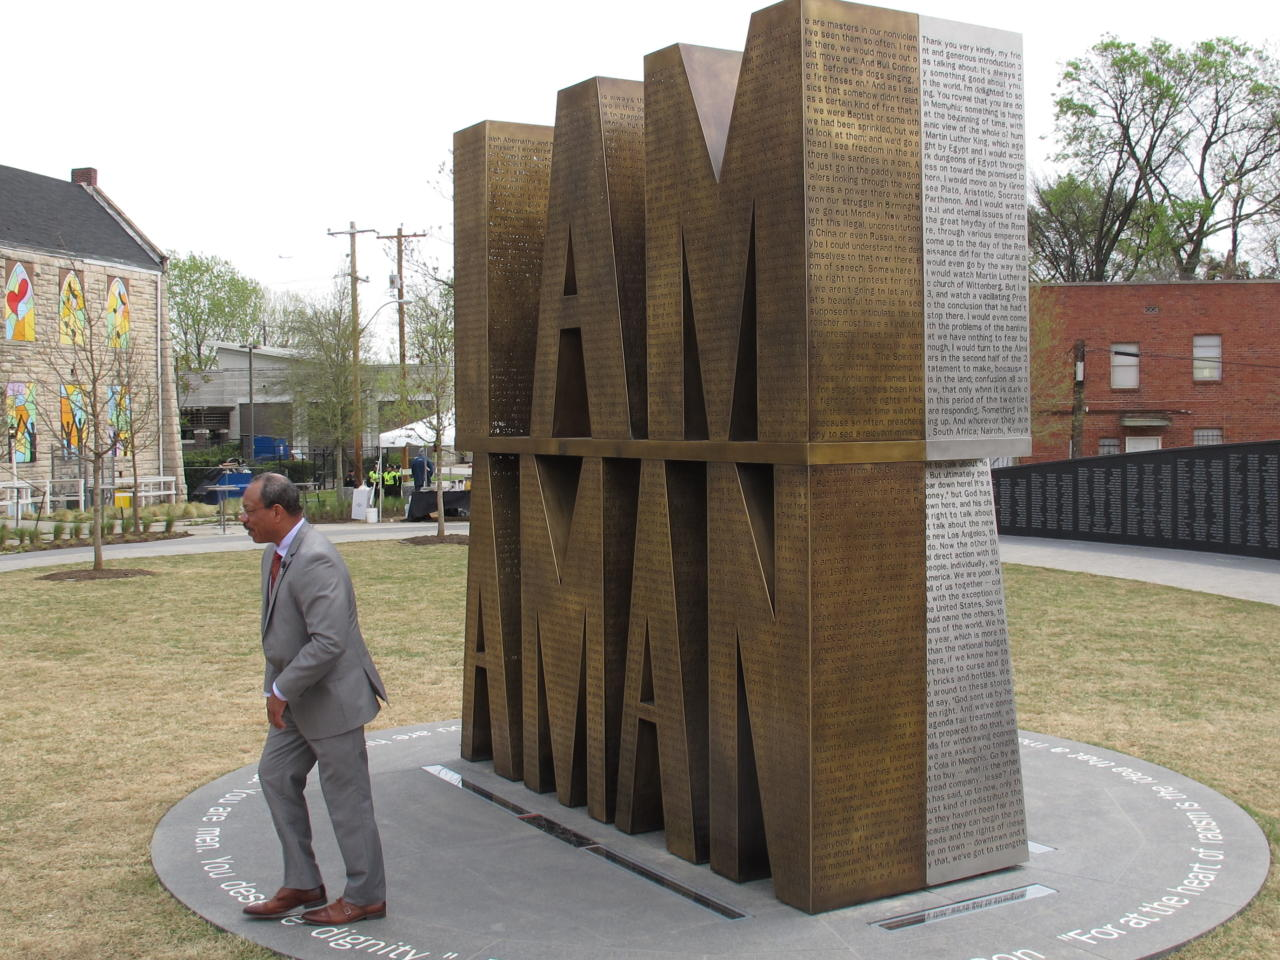 A bronze and steel sculpture honoring a sanitation workers strike that brought the Rev. Martin Luther King Jr. to Memphis in 1968 was dedicated on Thursday, April 5, 2018, in Memphis, Tenn. The memorial sits at I Am A Man Plaza next to the Clayborn Temple, which served as the headquarters of the strike. (AP Photo/Adrian Sainz).